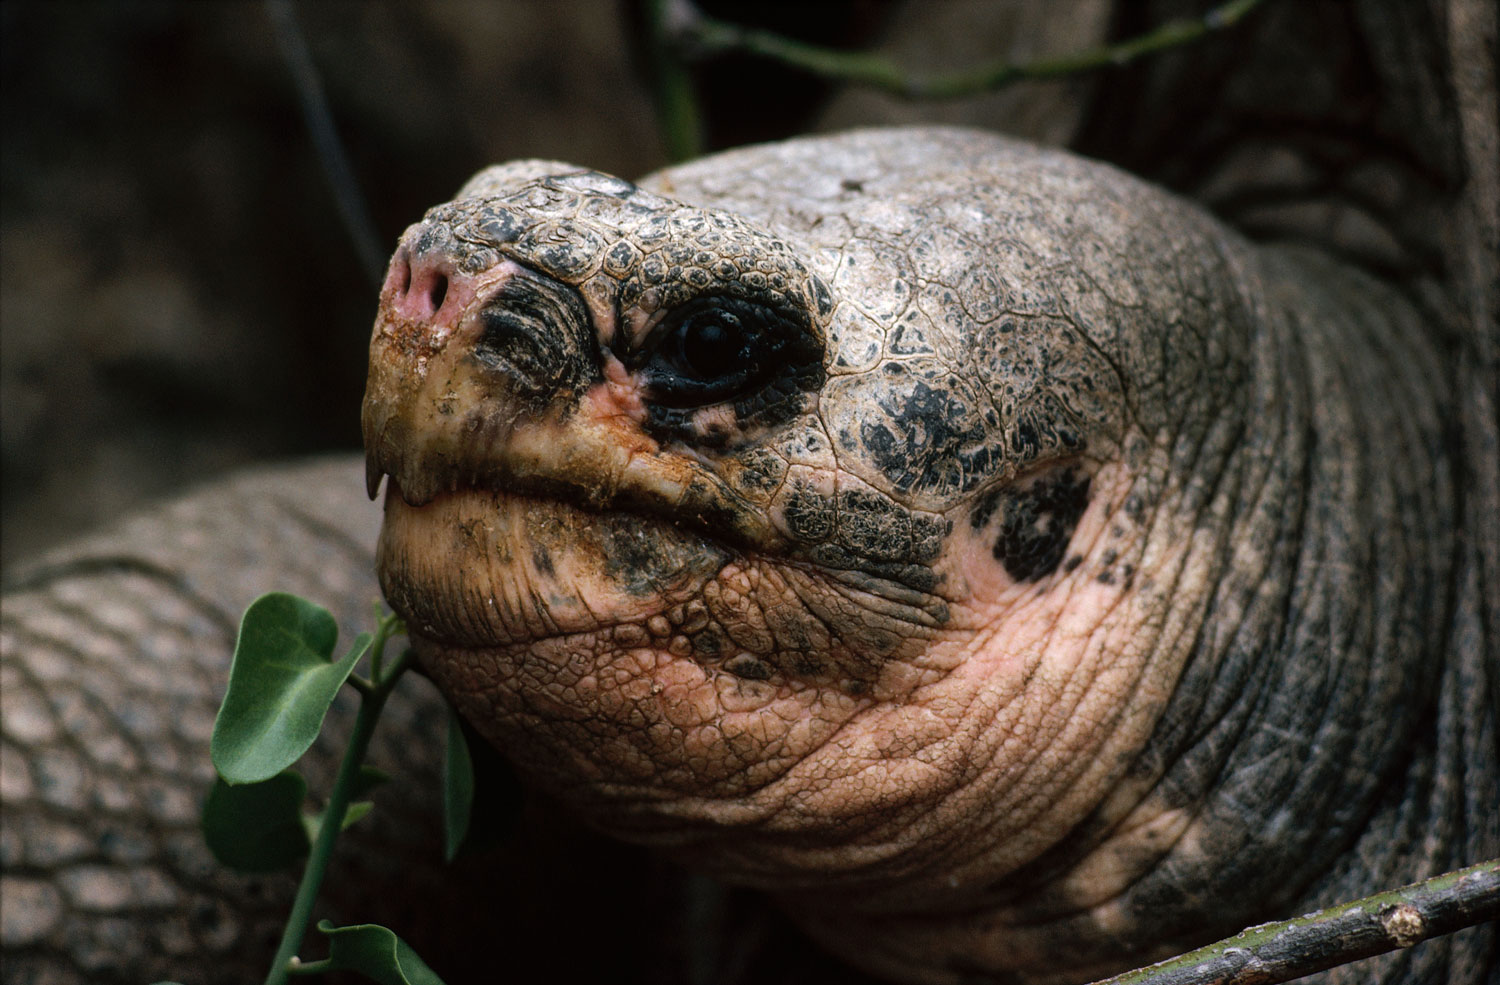 Known as Lonesome George, this Pinta Island Tortoise in the Galapagos was the last known member of his subspecies. Before his death on June 24 last year he was a symbol for conservation efforts.